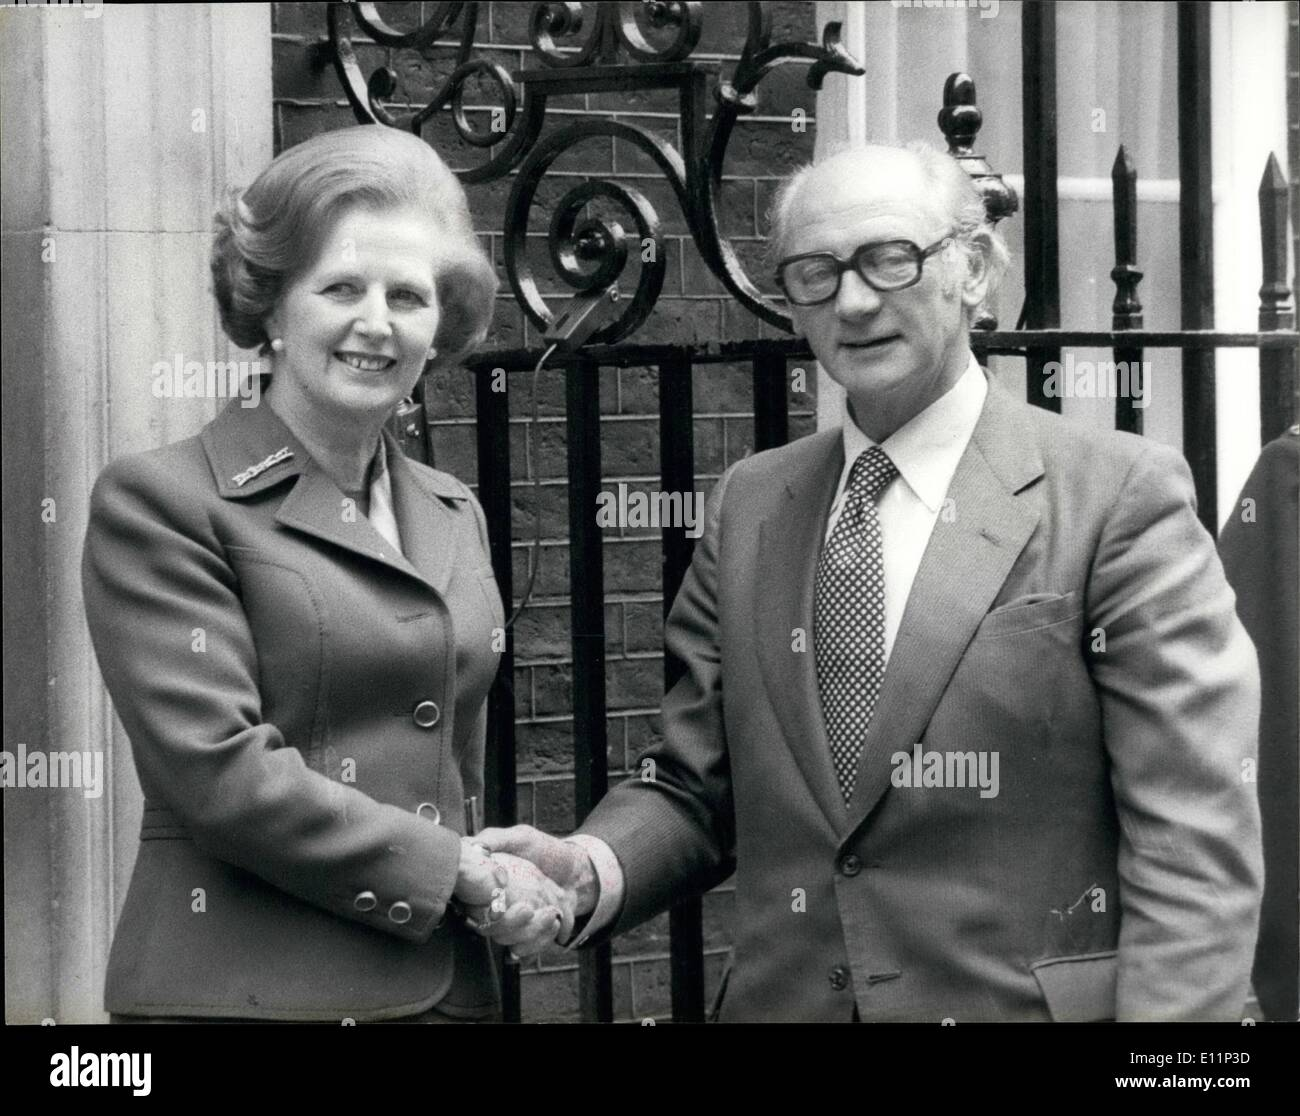 May 05, 1979 - Mr. Jack Lynch meets Mrs, Thatcher: Mr. Jack Lynch, the Irish Prime Minister, this afternoon called on Mrs. Margaret Thatcher at No.10 Downing Street. He was the first foreign head of government to visit her since she came to power. Photo shows Mrs. Thatcher shakes hands with Mr, Lynch at No 10 Downing Street today. - Stock Image